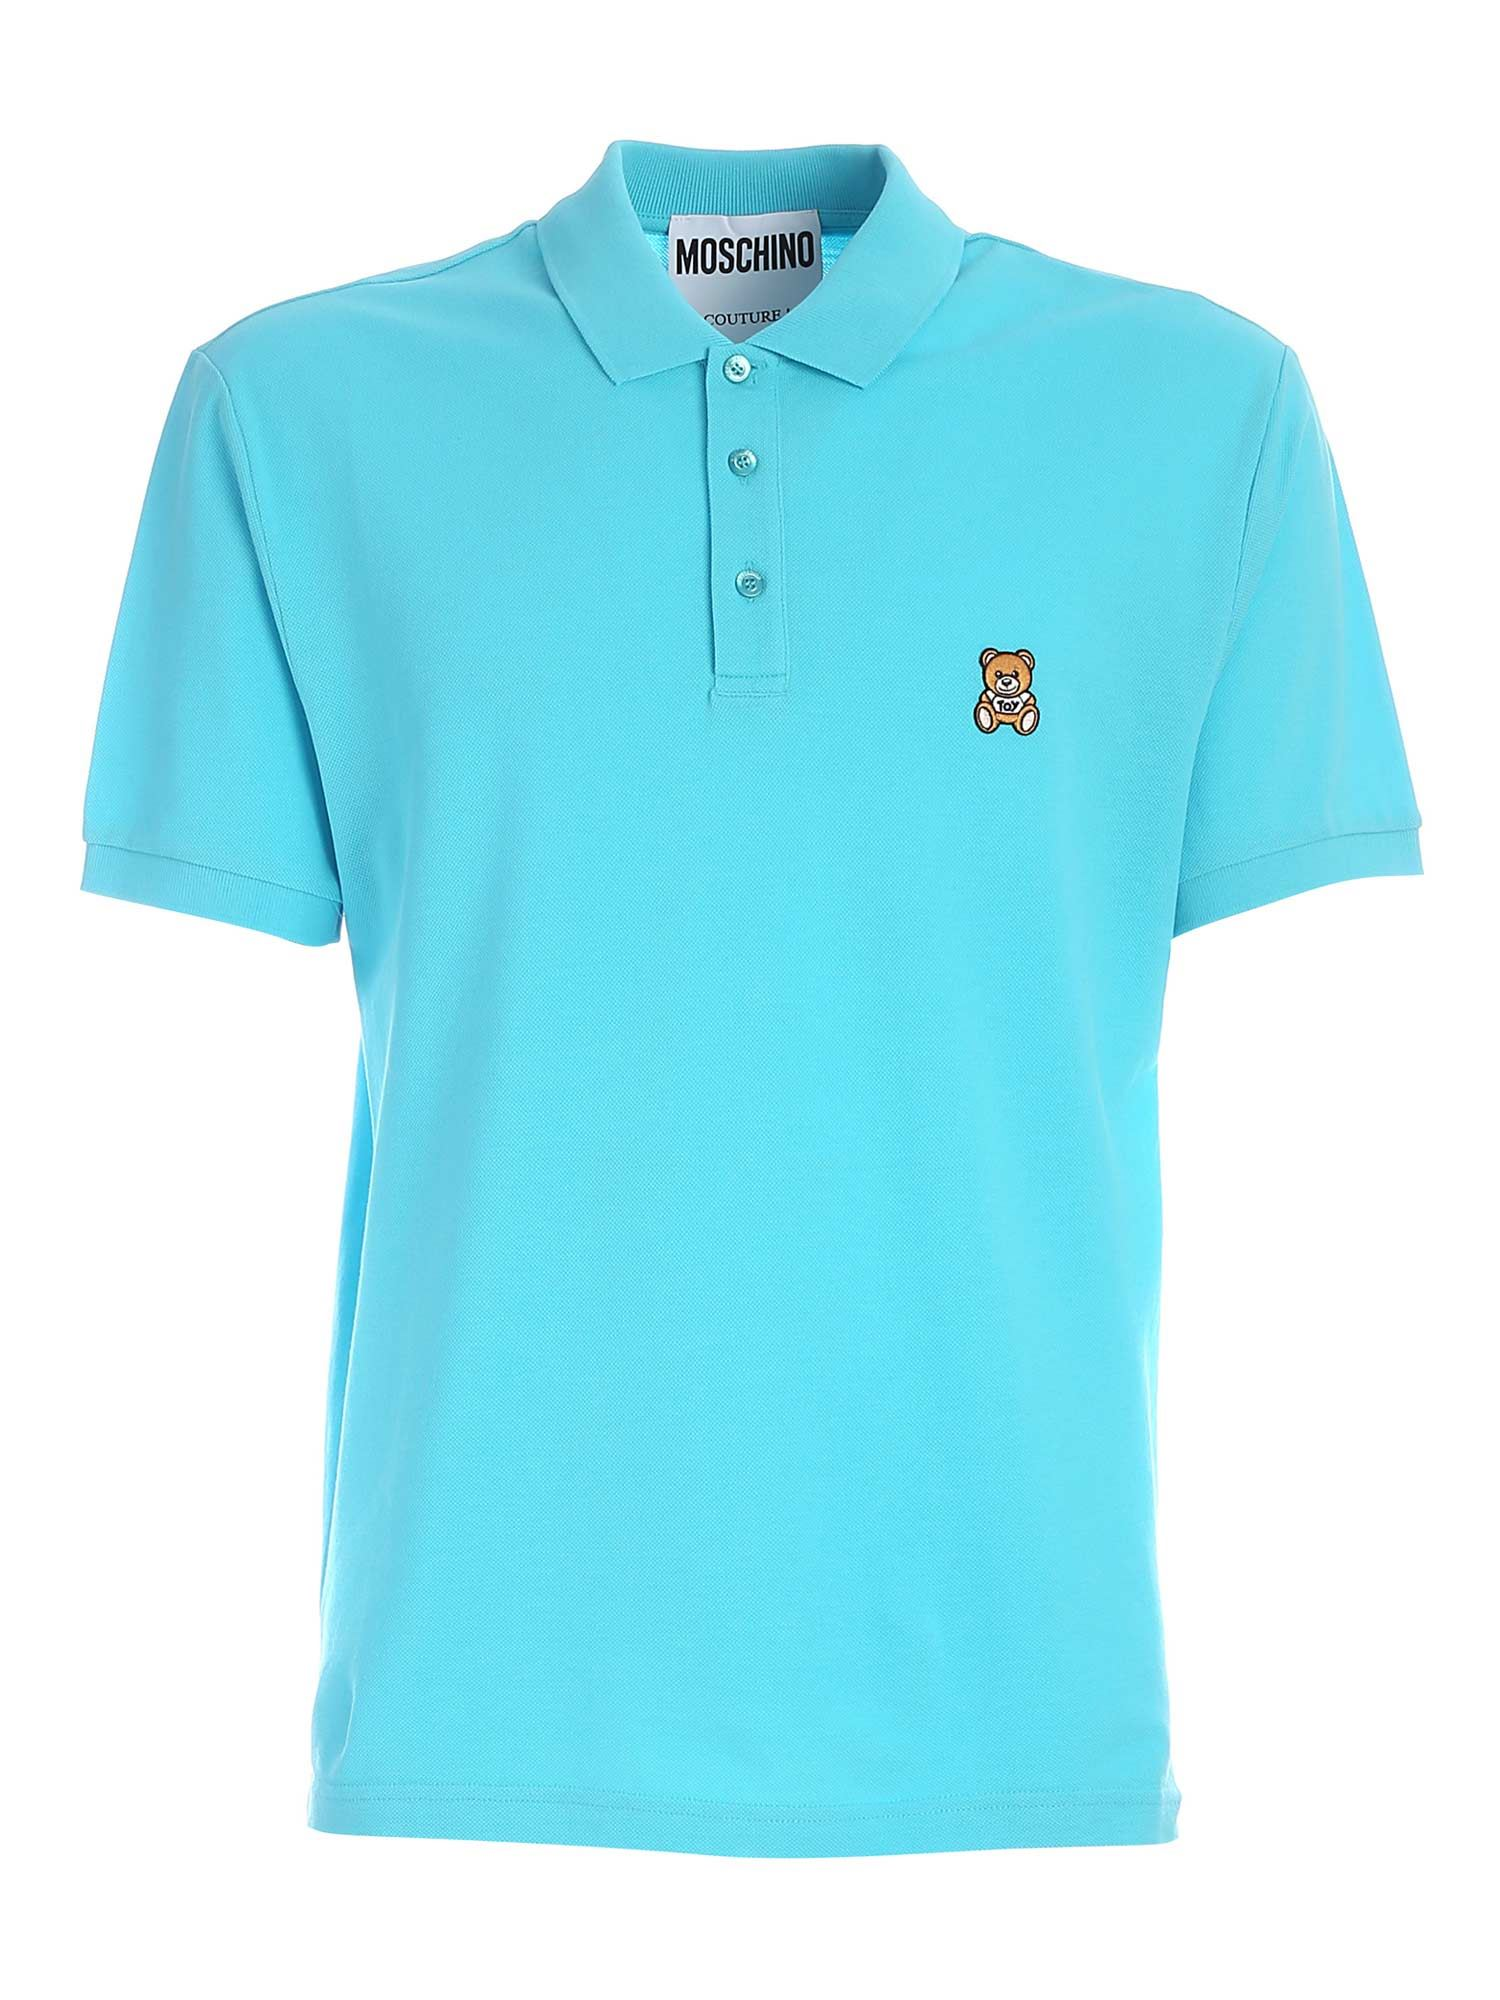 Moschino Cottons TEDDY BEAR PATCH POLO SHIRT IN LIGHT BLUE